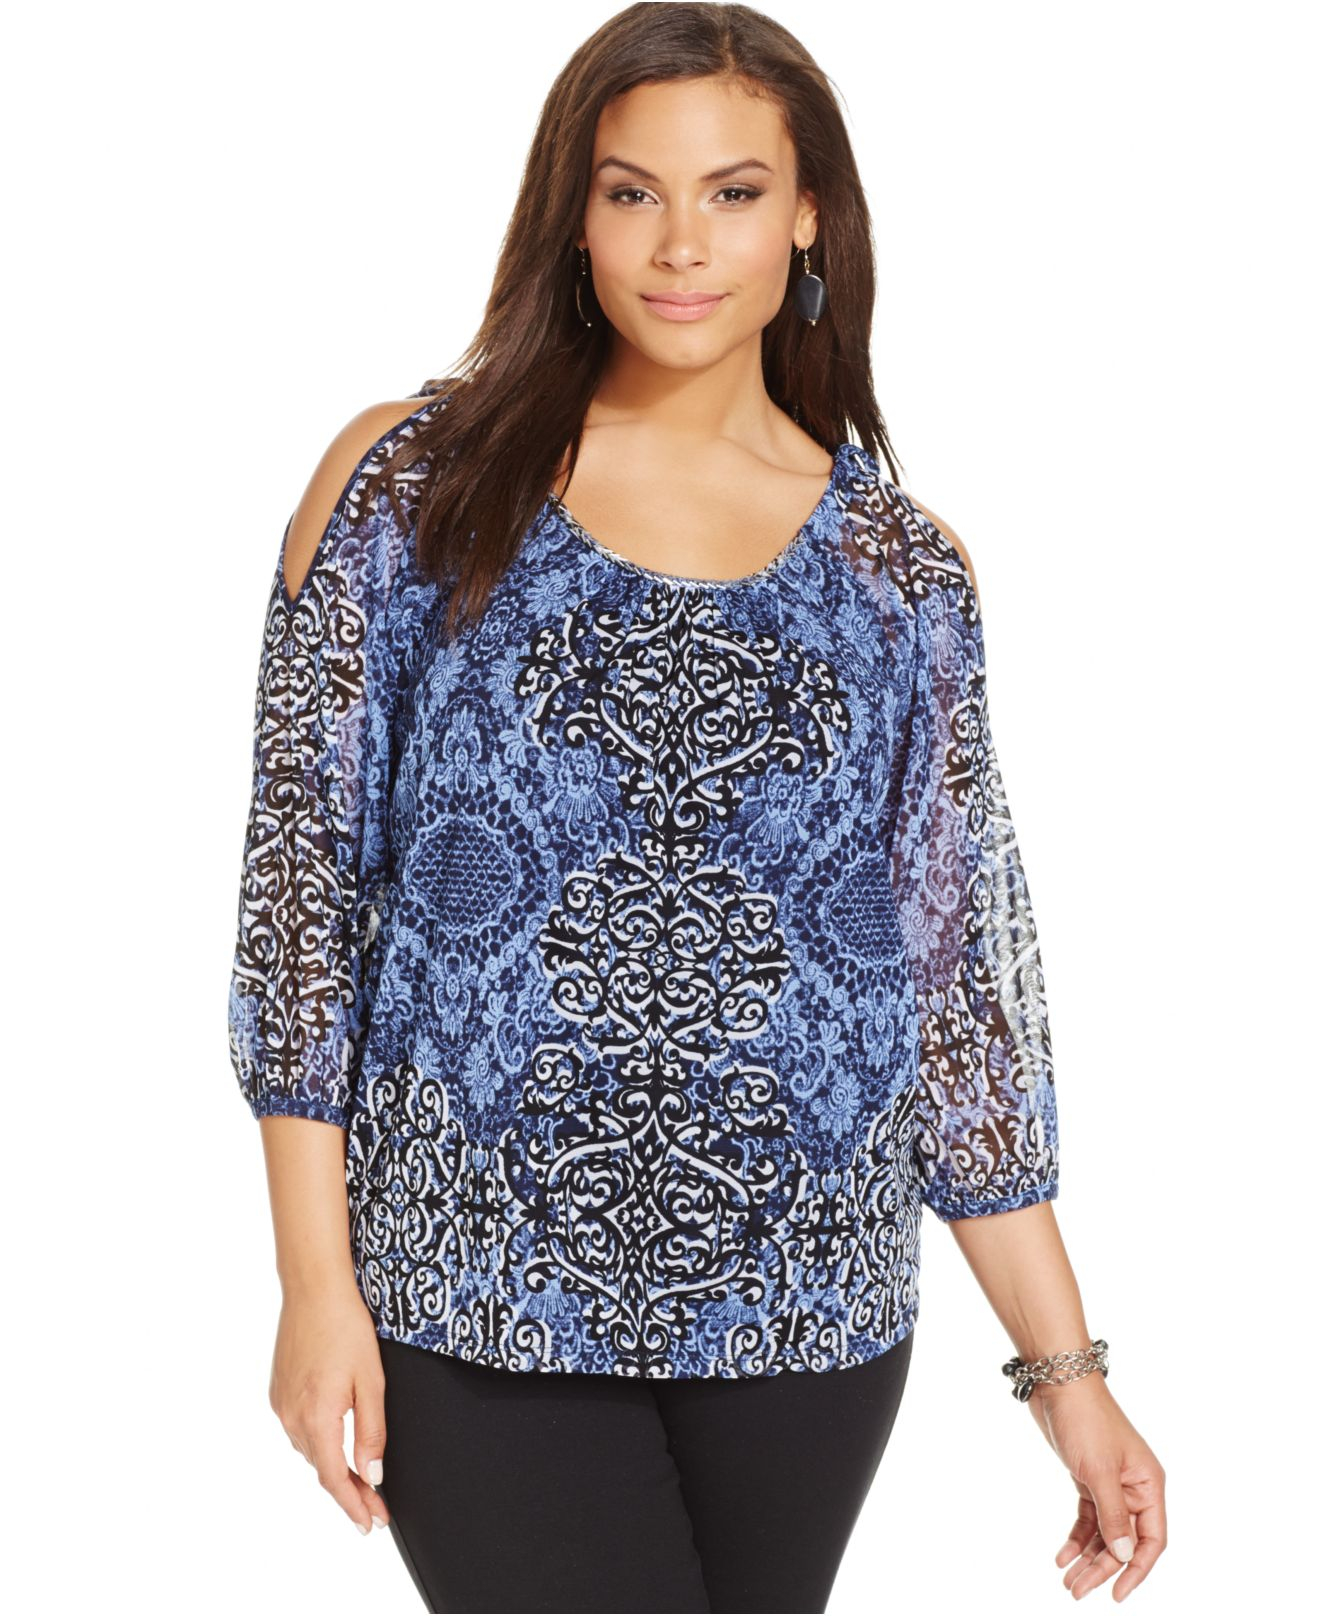 76896610bd9 Lyst - INC International Concepts Plus Size Cold-Shoulder Printed ...